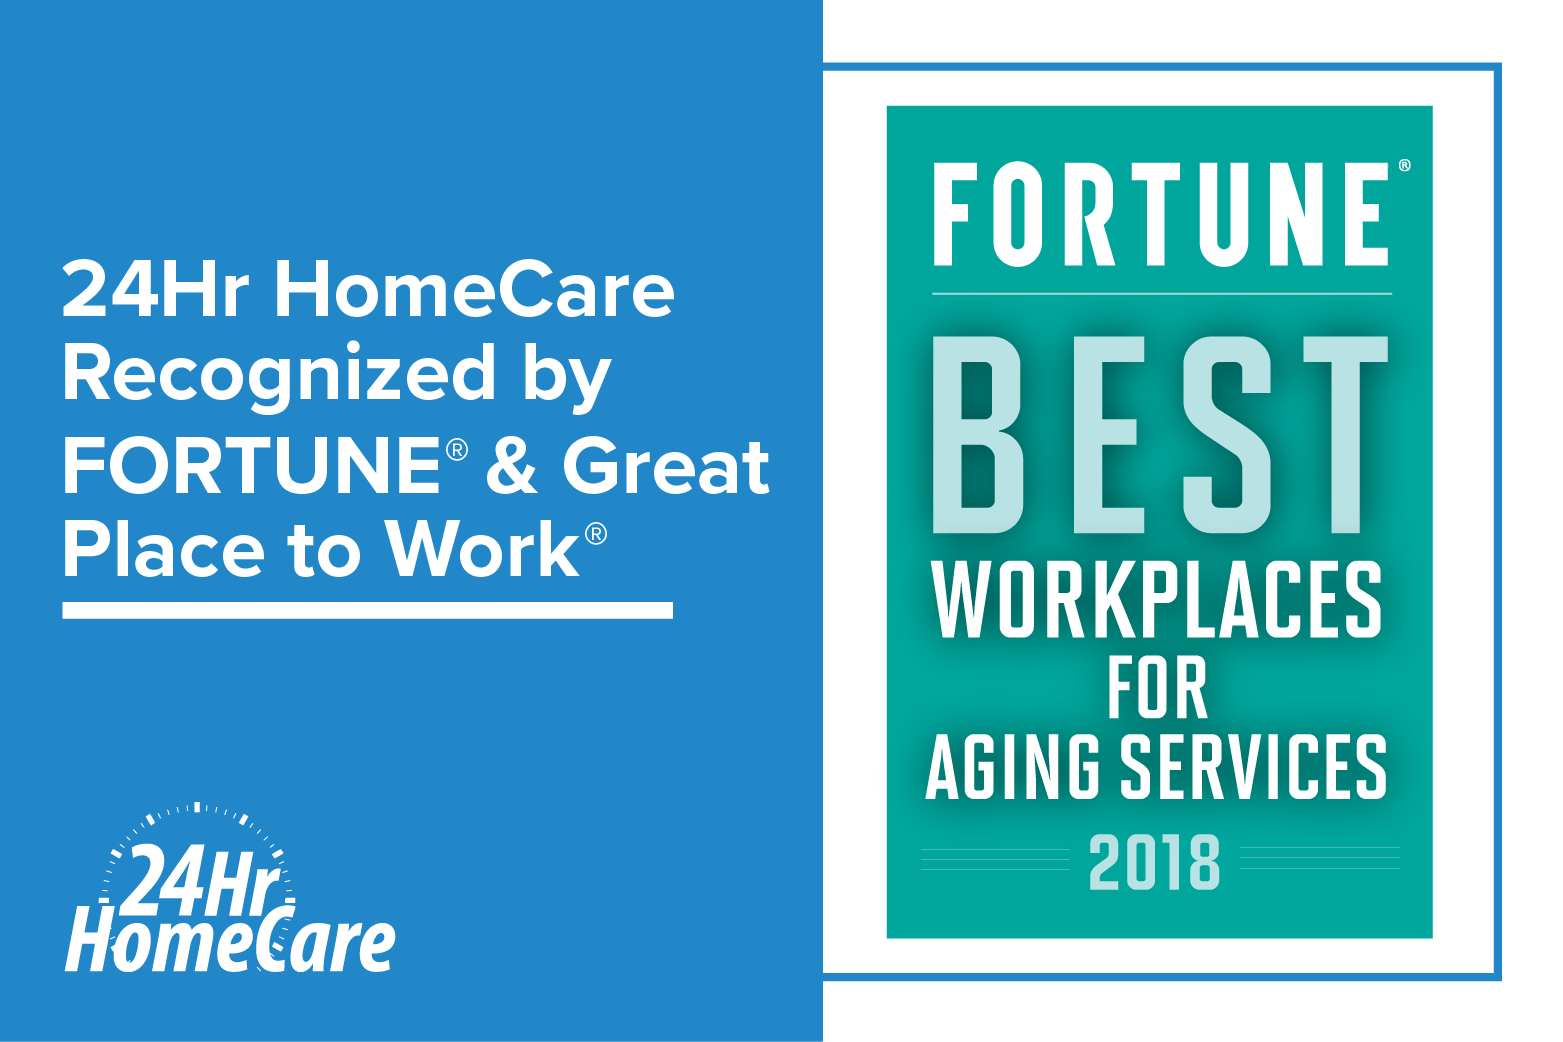 24 Hour Home Care Named One of the FORTUNE ® 2018 Best Workplaces for Aging Services by Great Place to Work®